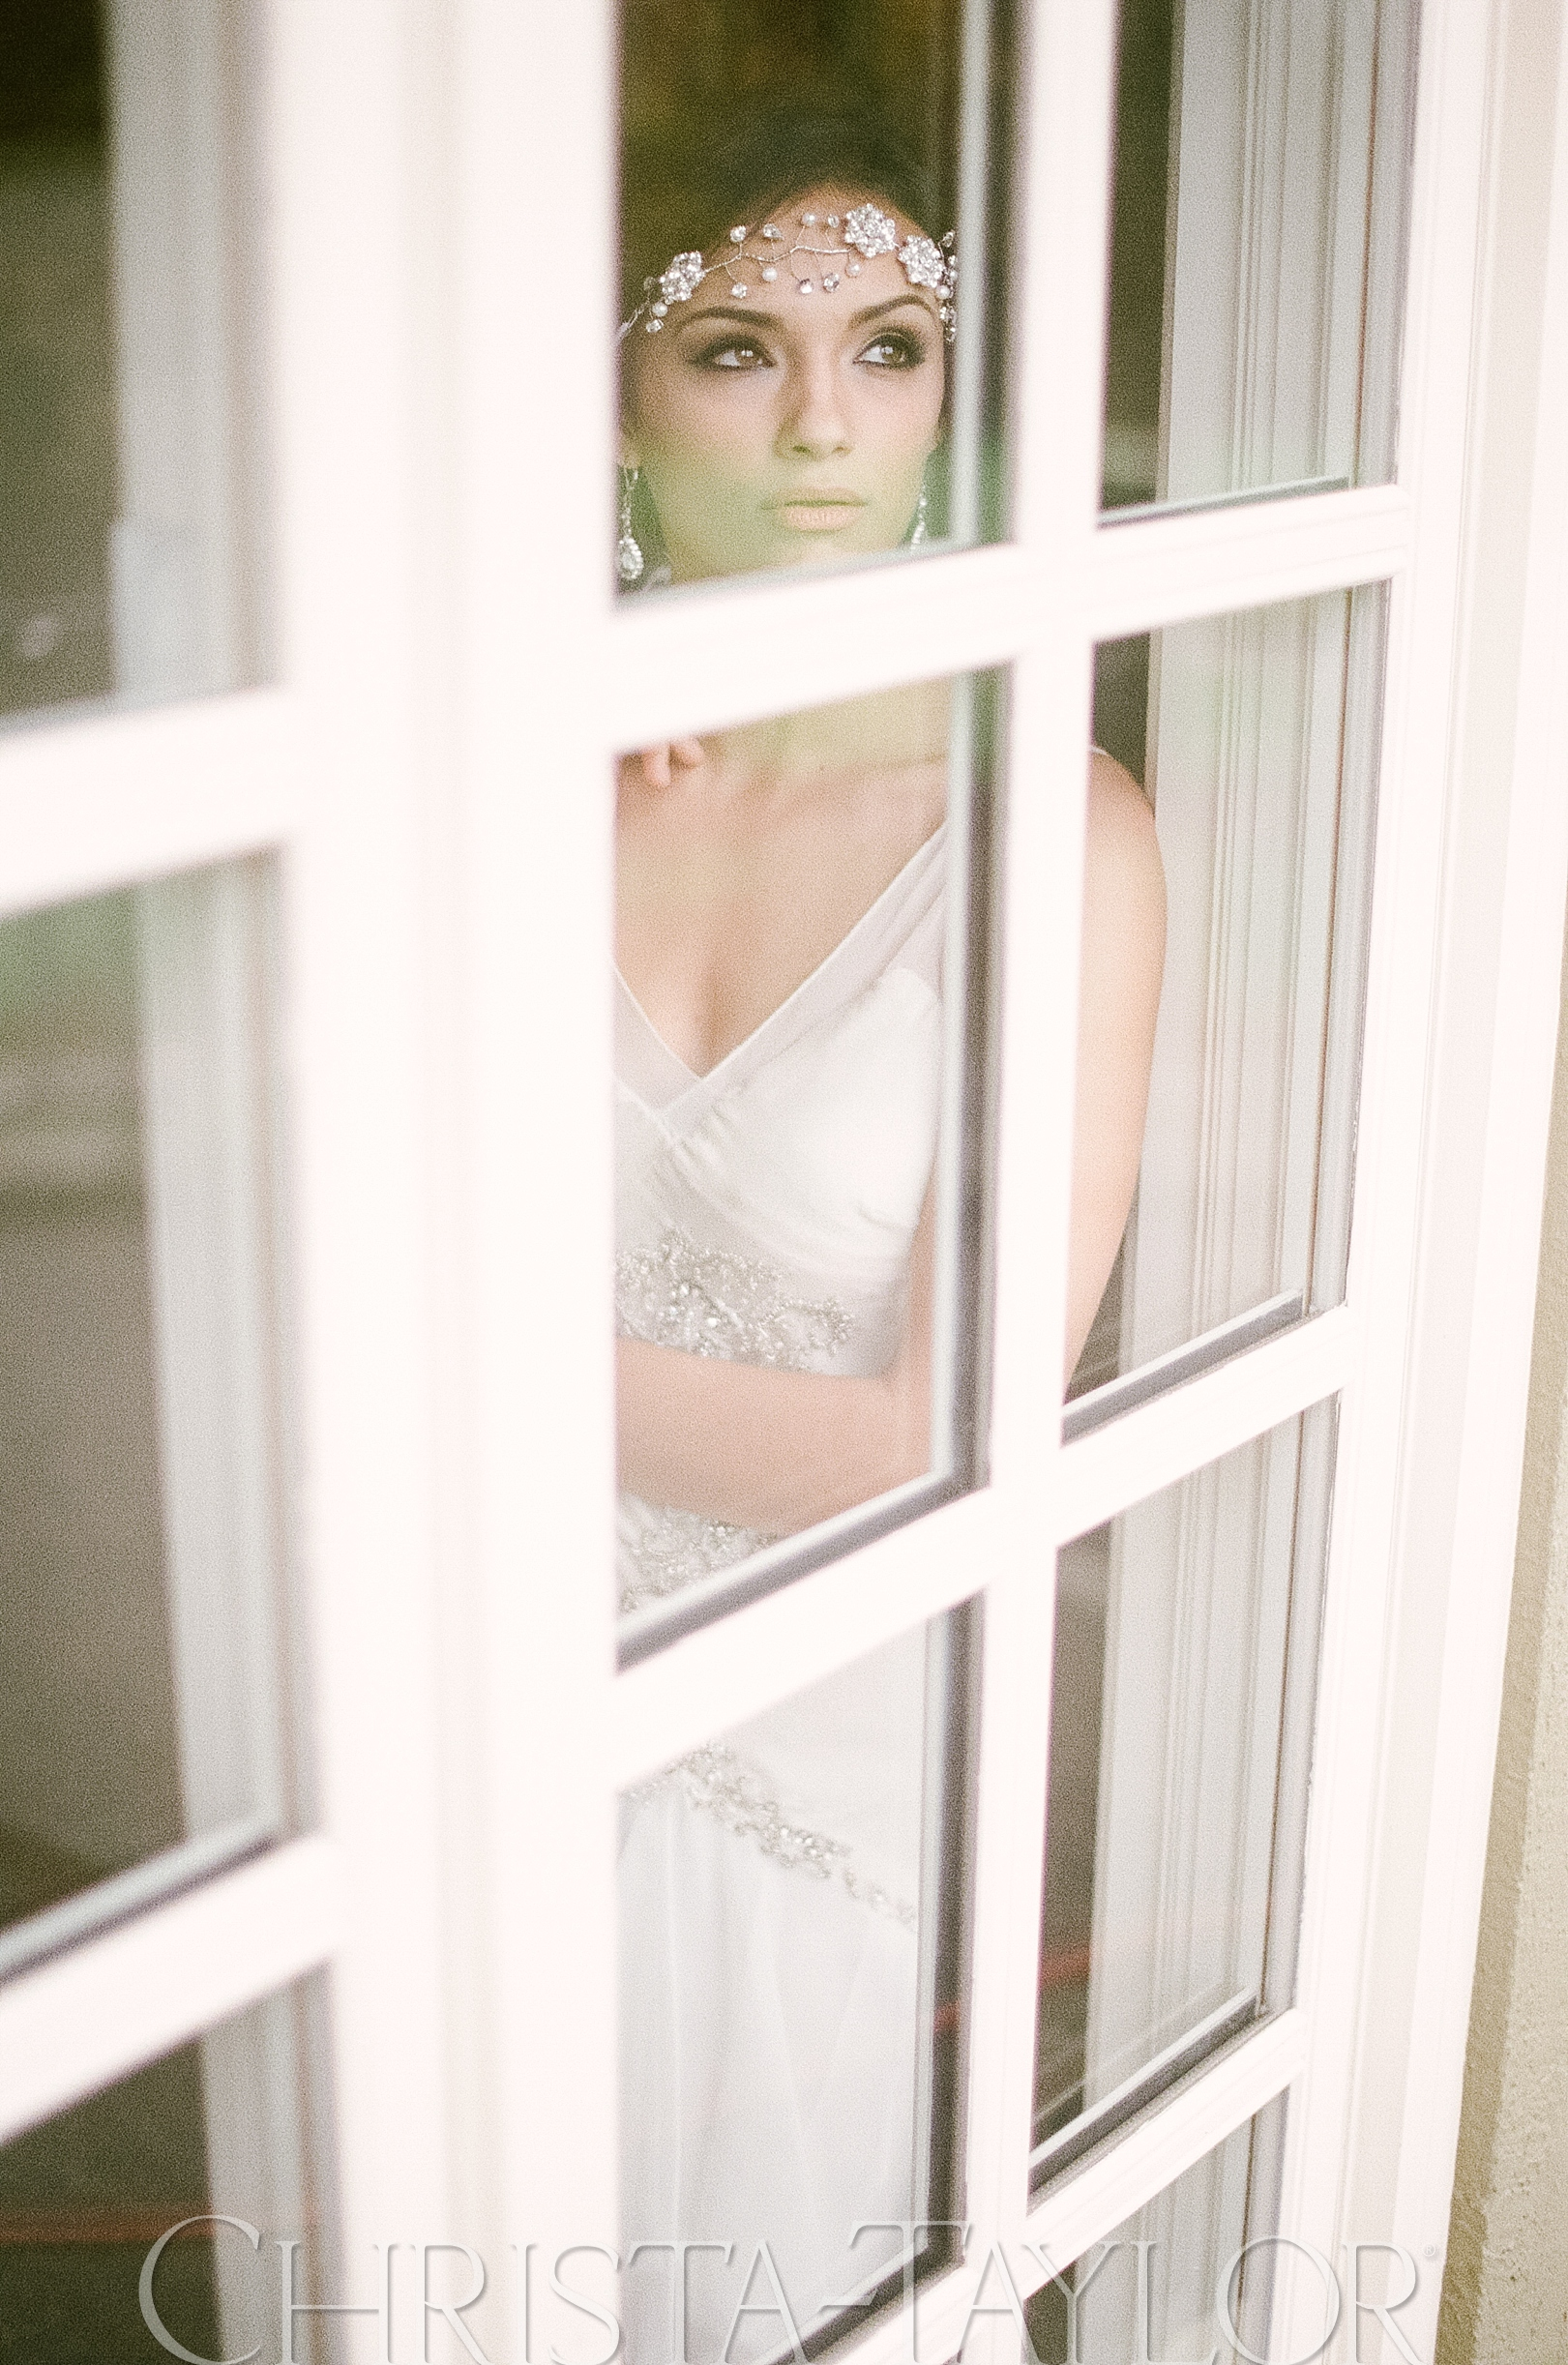 fine art wedding photography portland or christa-taylor_0743